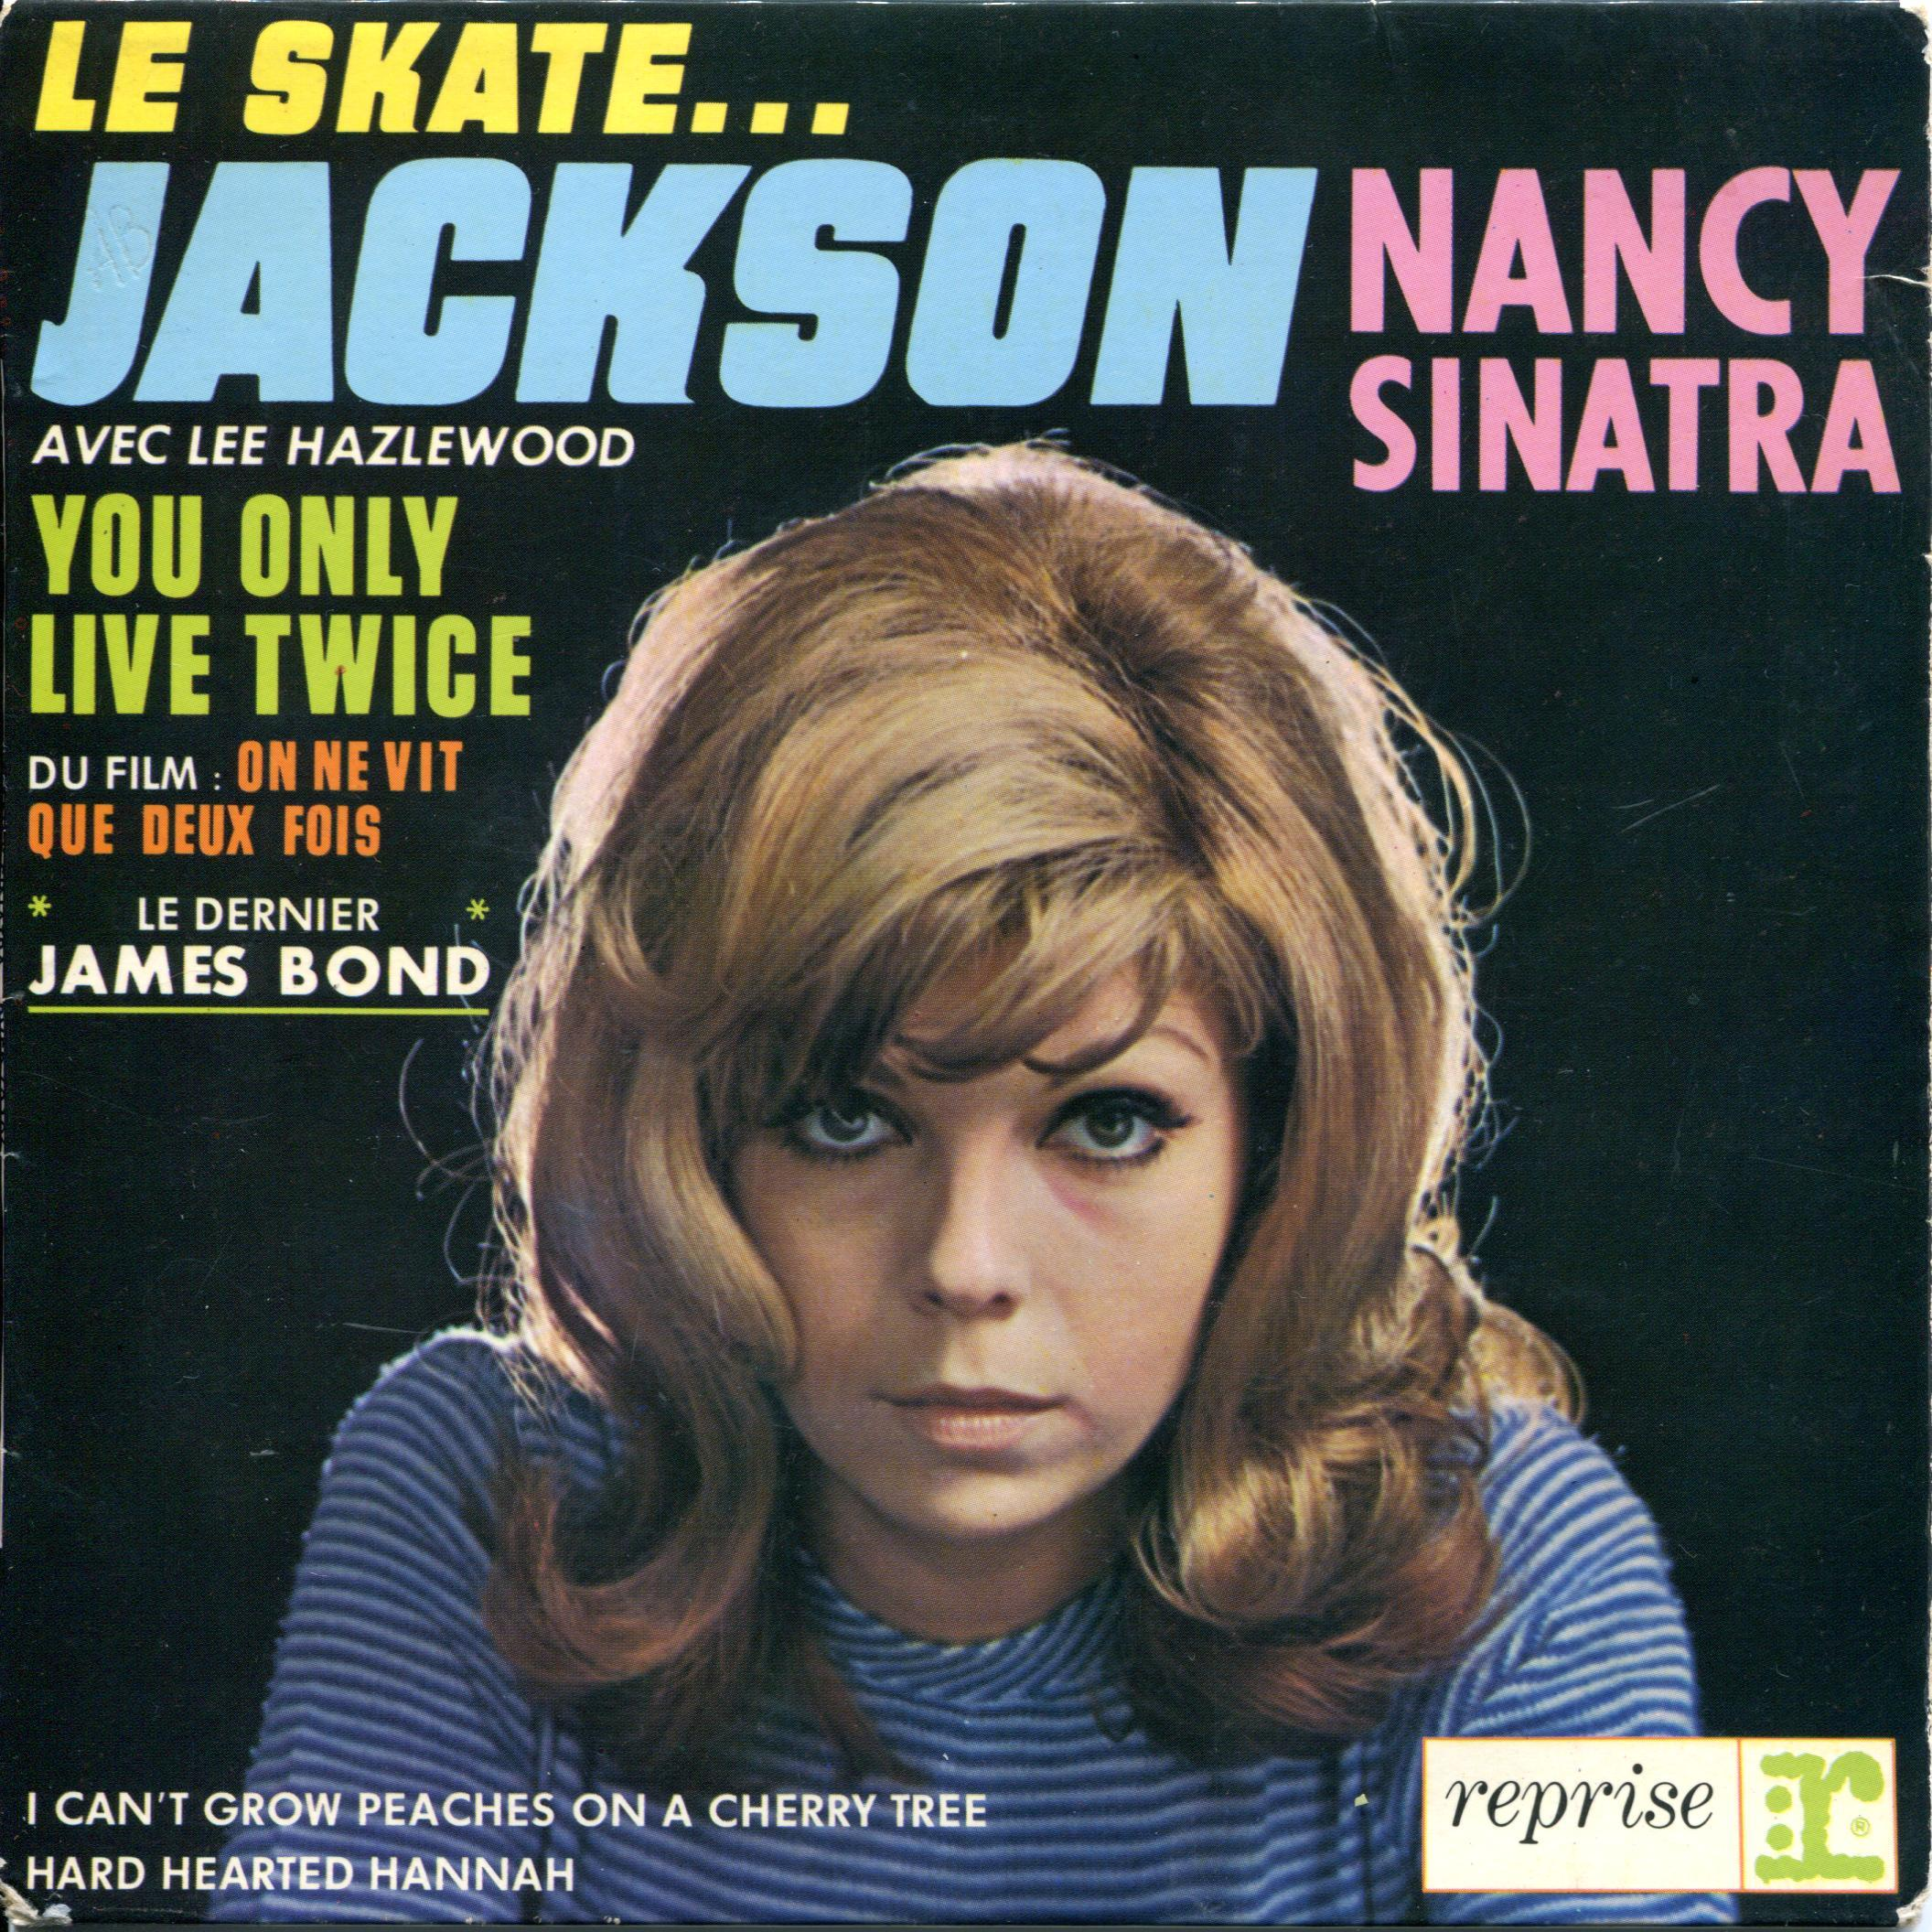 Le Skate... Jackson Nancy Sinatra You Only Live Twice Reprise